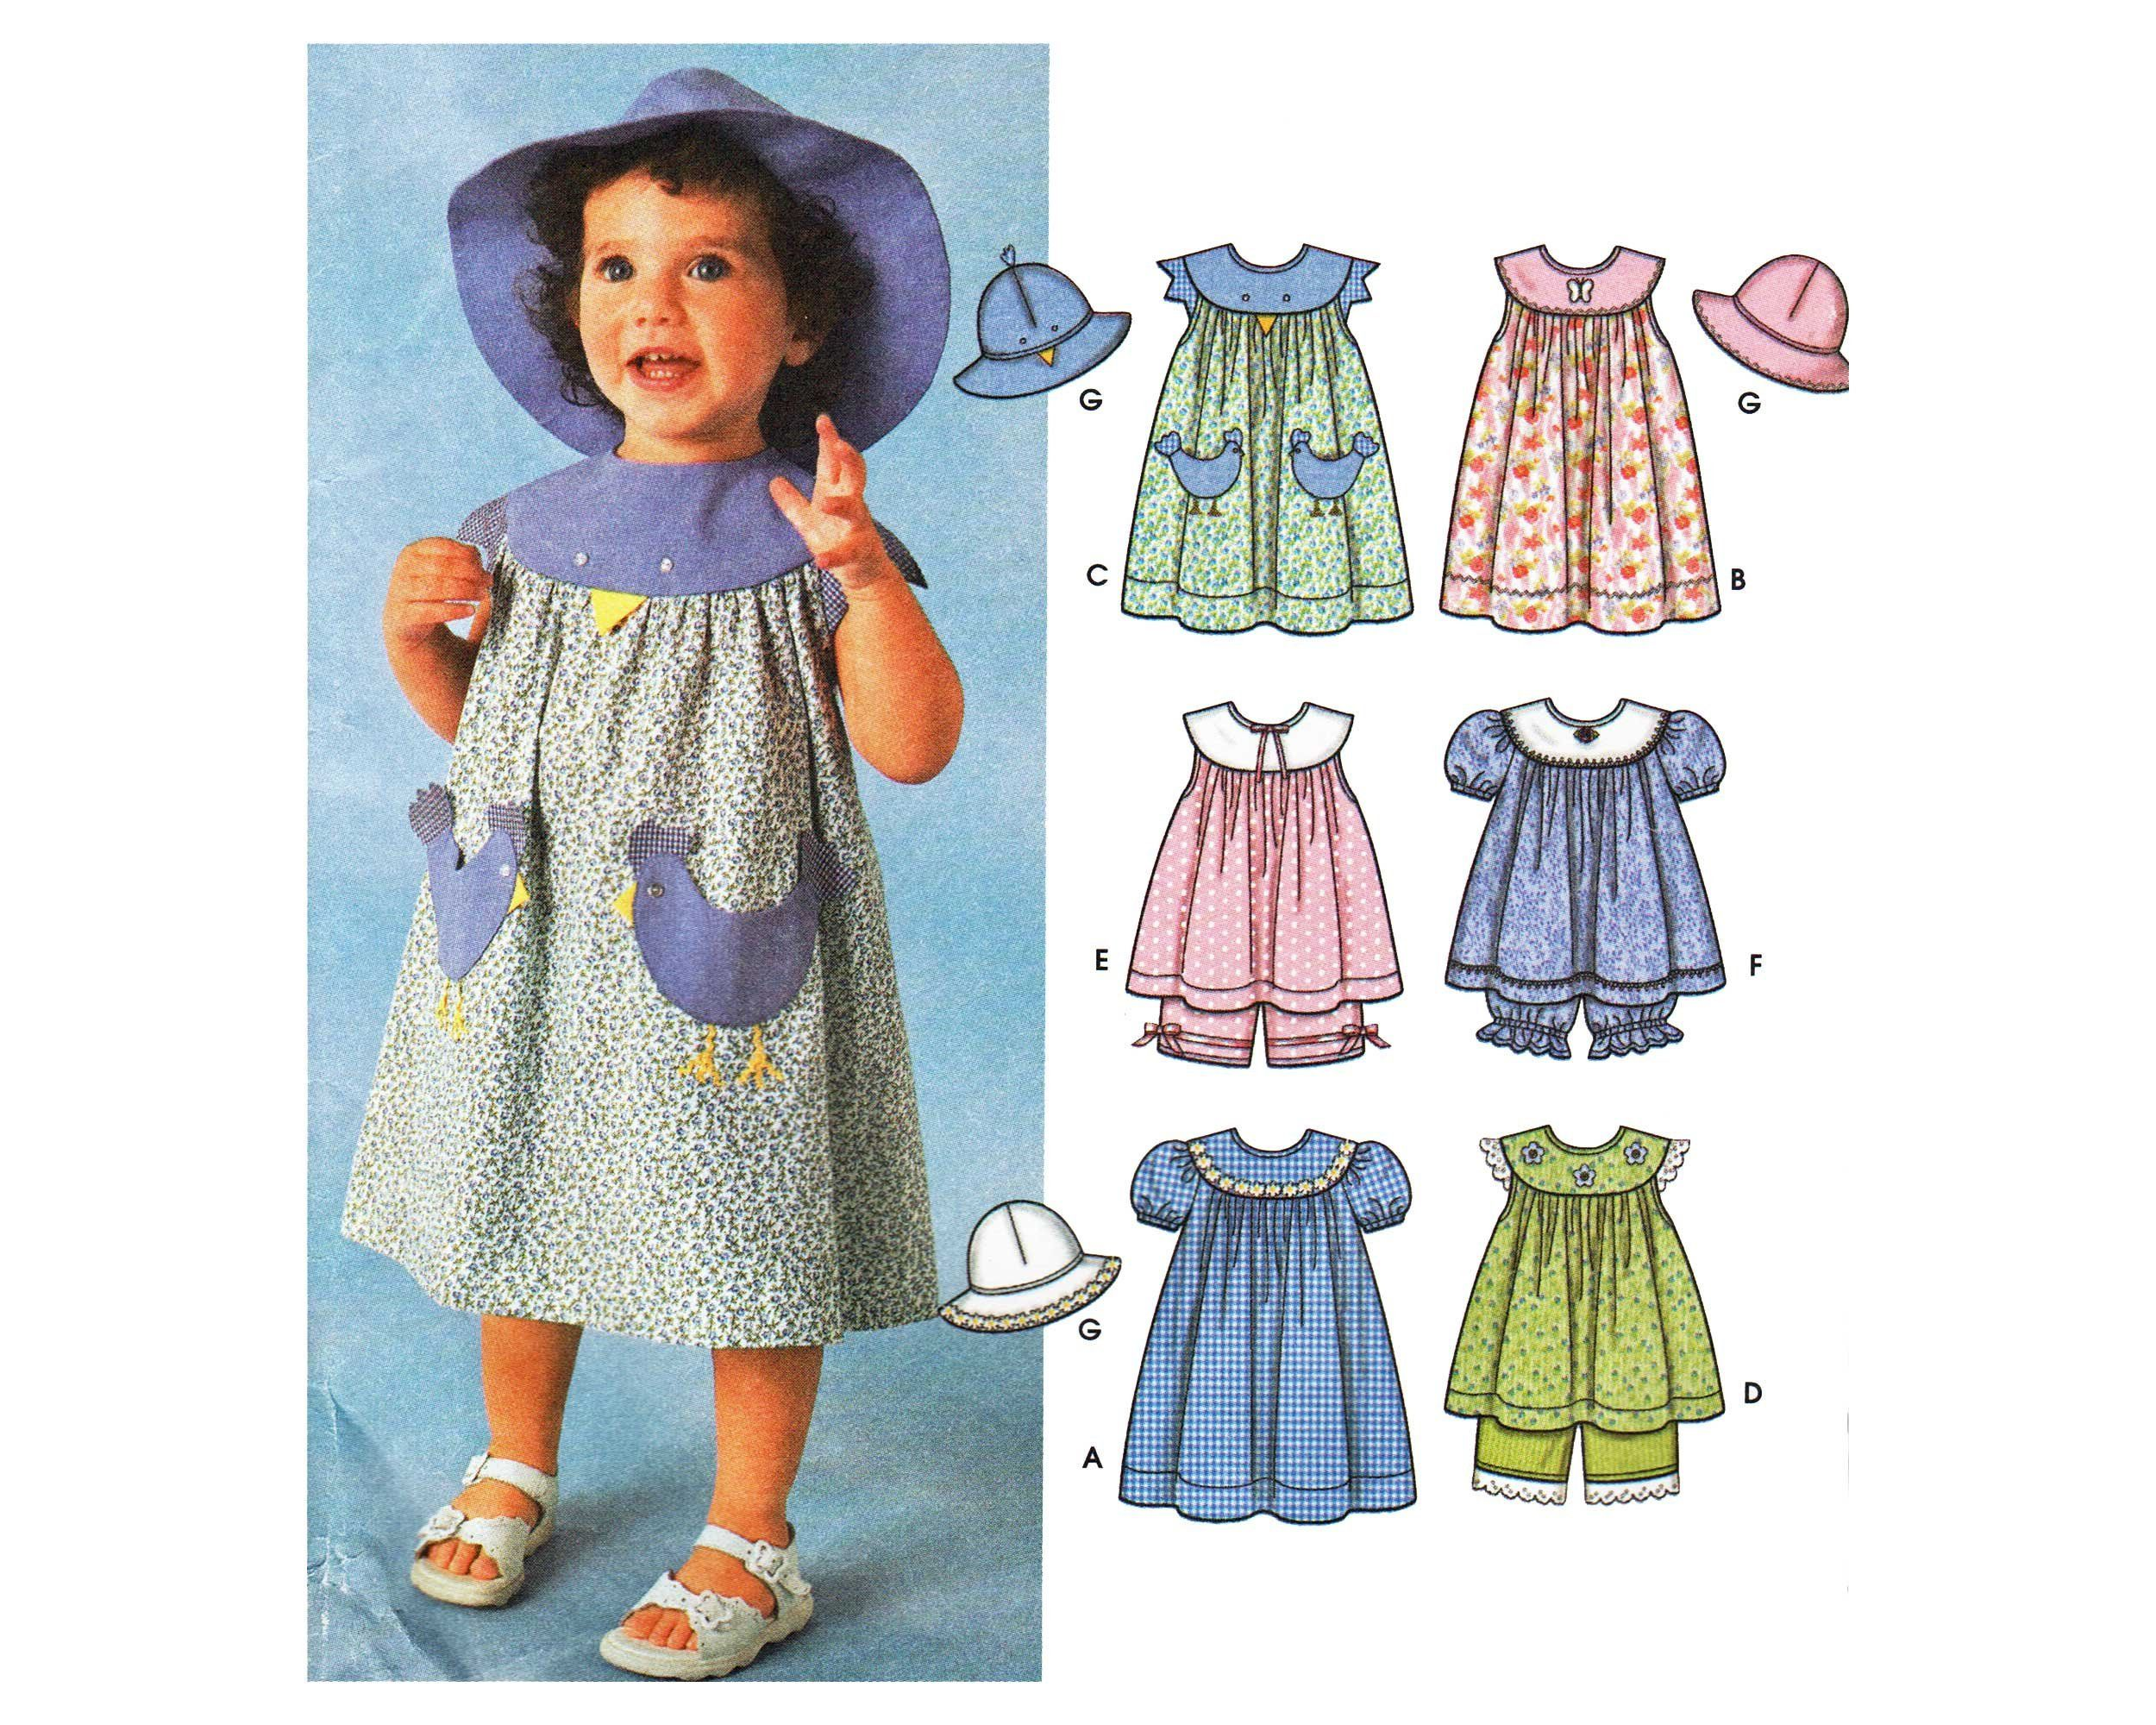 Toddler dress pattern girls country dress bloomer pants and sun hat